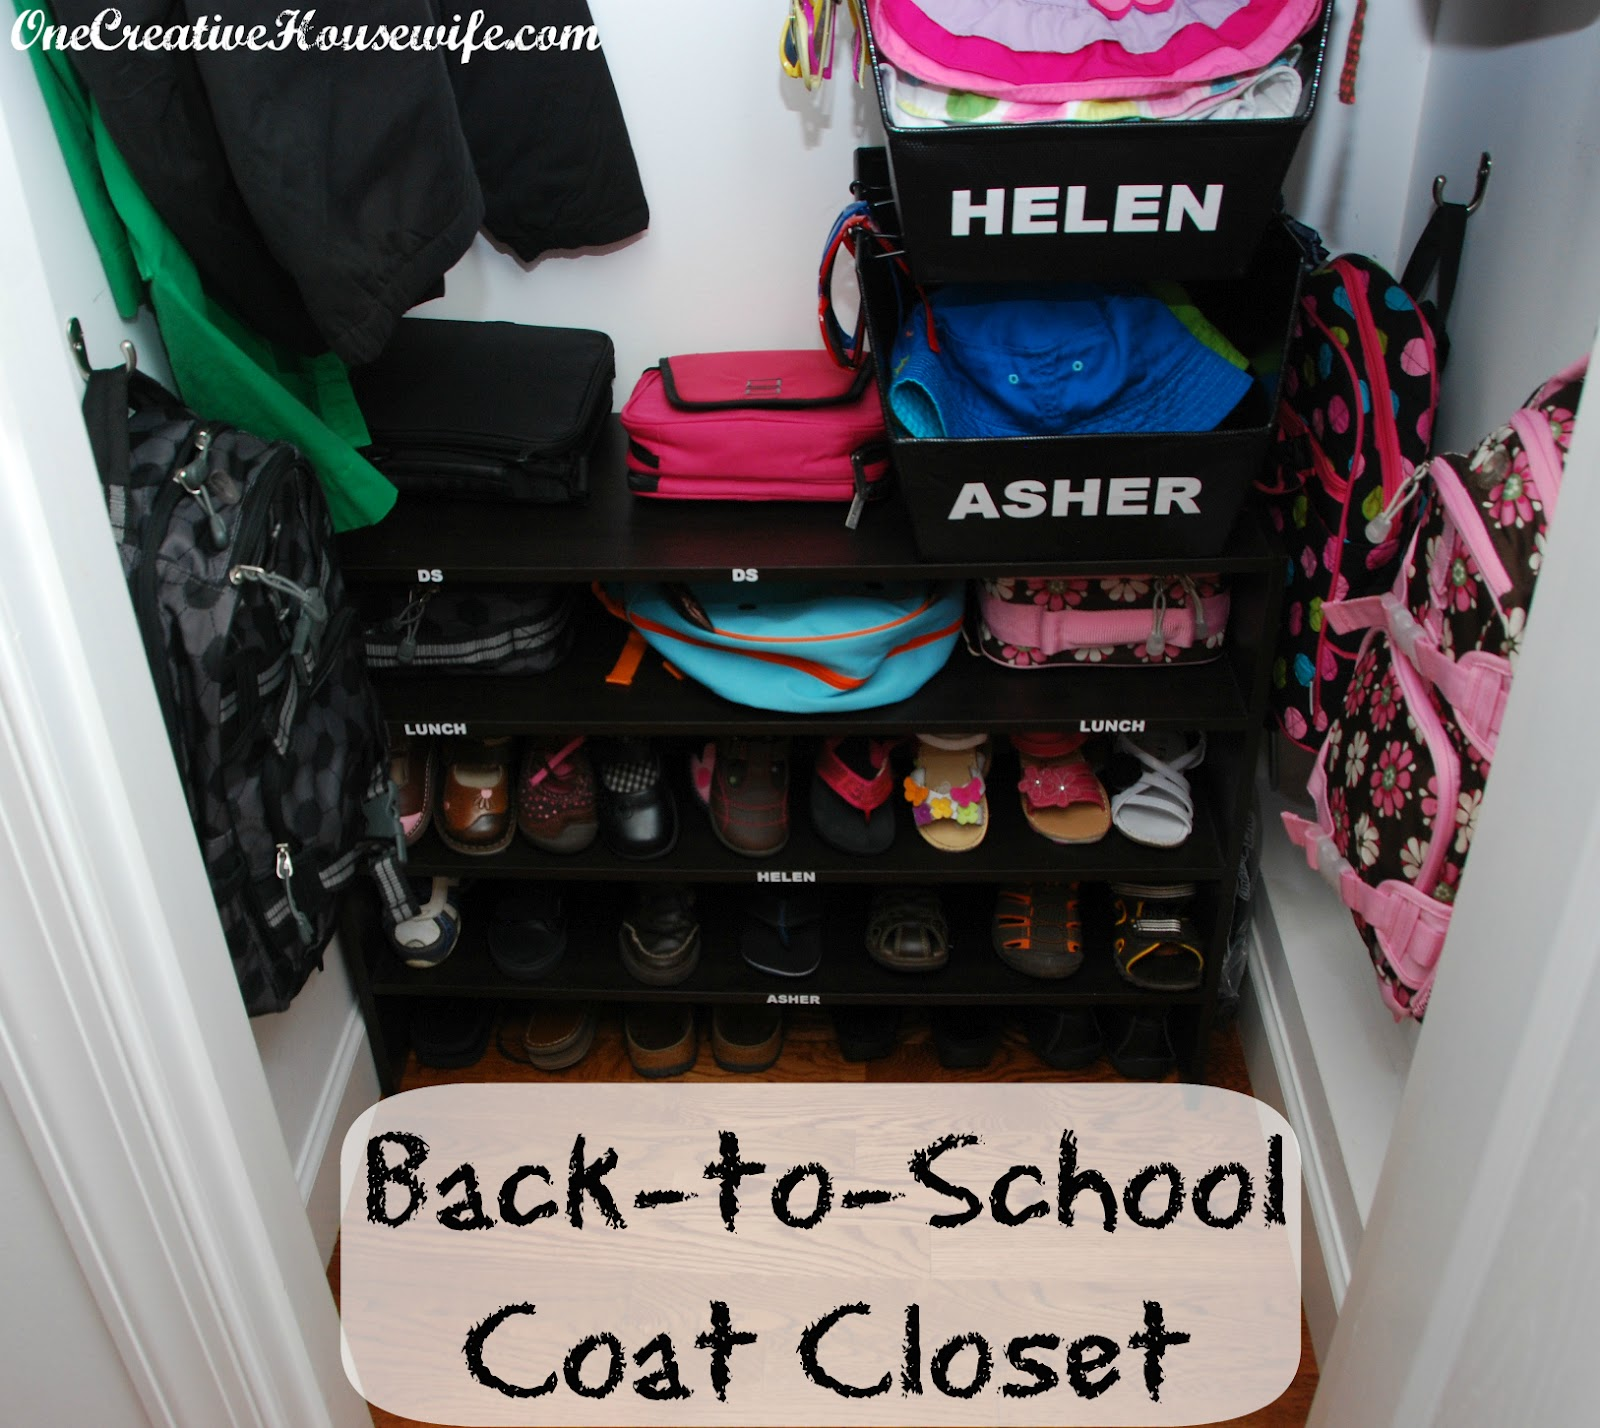 Getting Our Coat Closet Ready For School